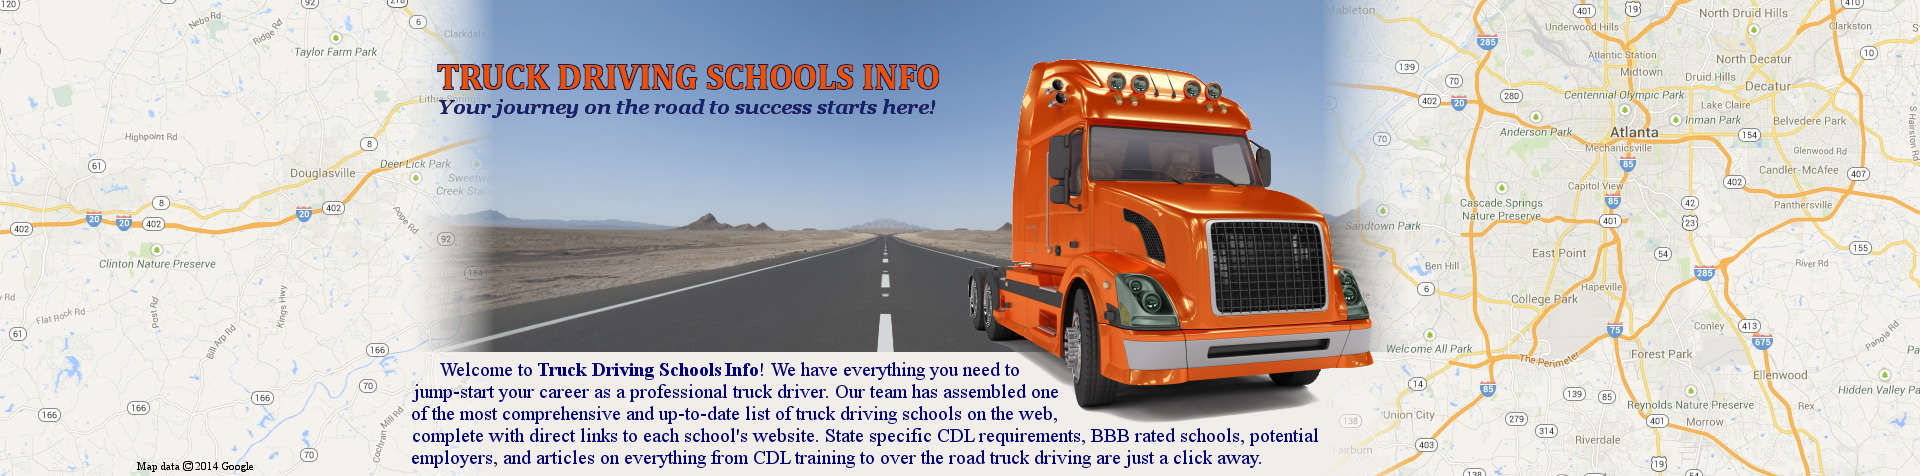 truck driver salary how much do truck drivers make truck driving schools info. Black Bedroom Furniture Sets. Home Design Ideas